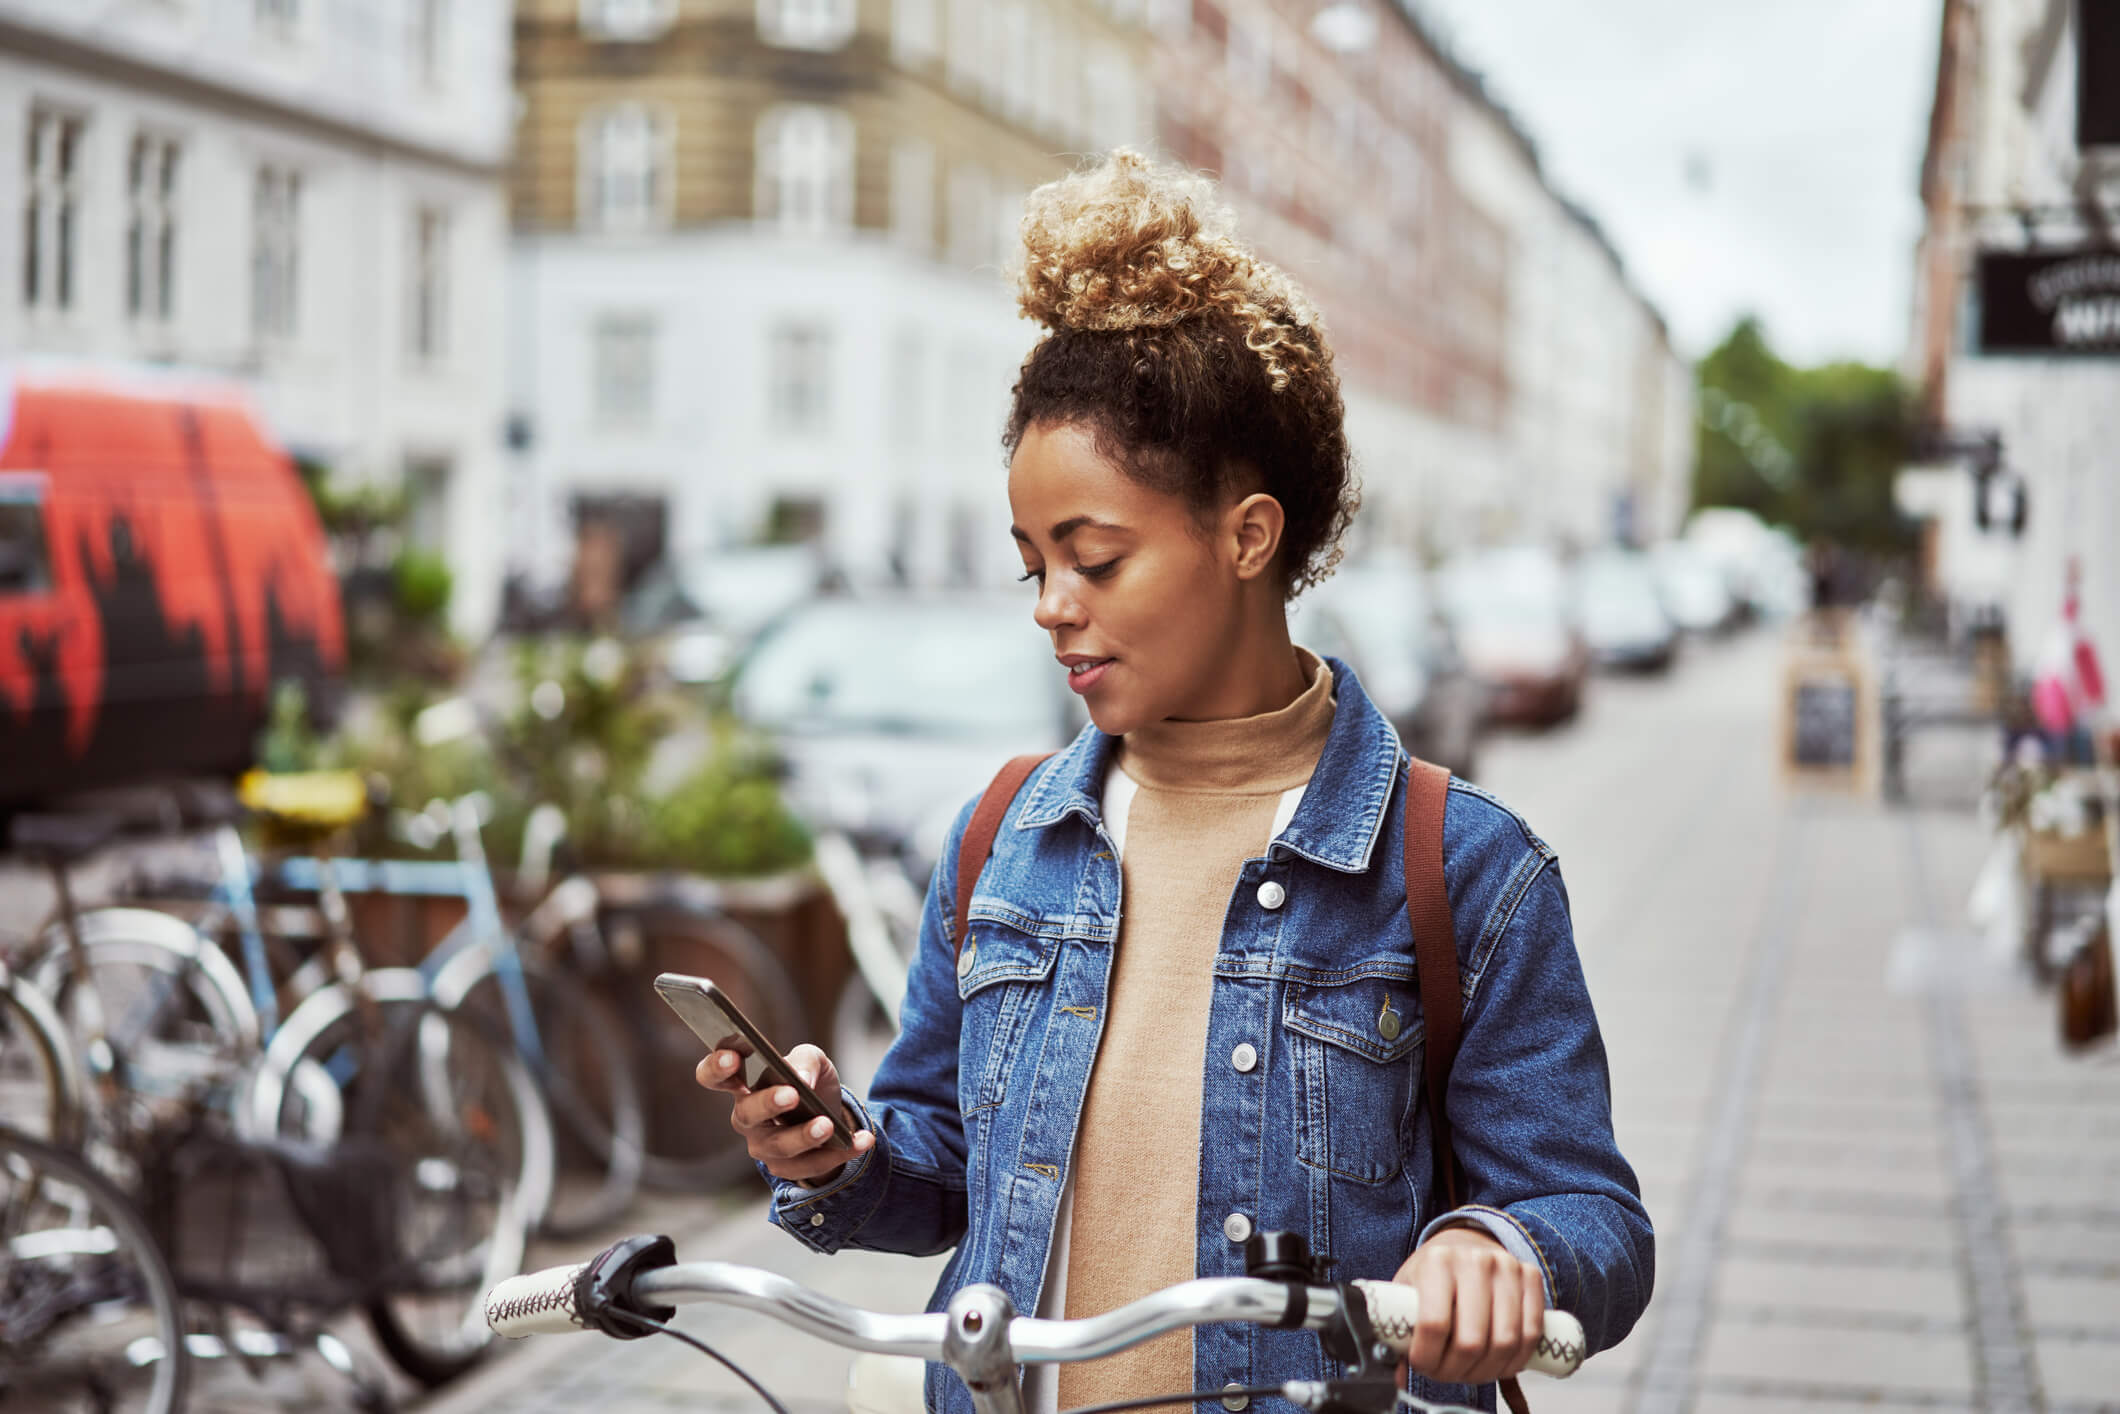 A woman with a bicycle is looking at her phone.